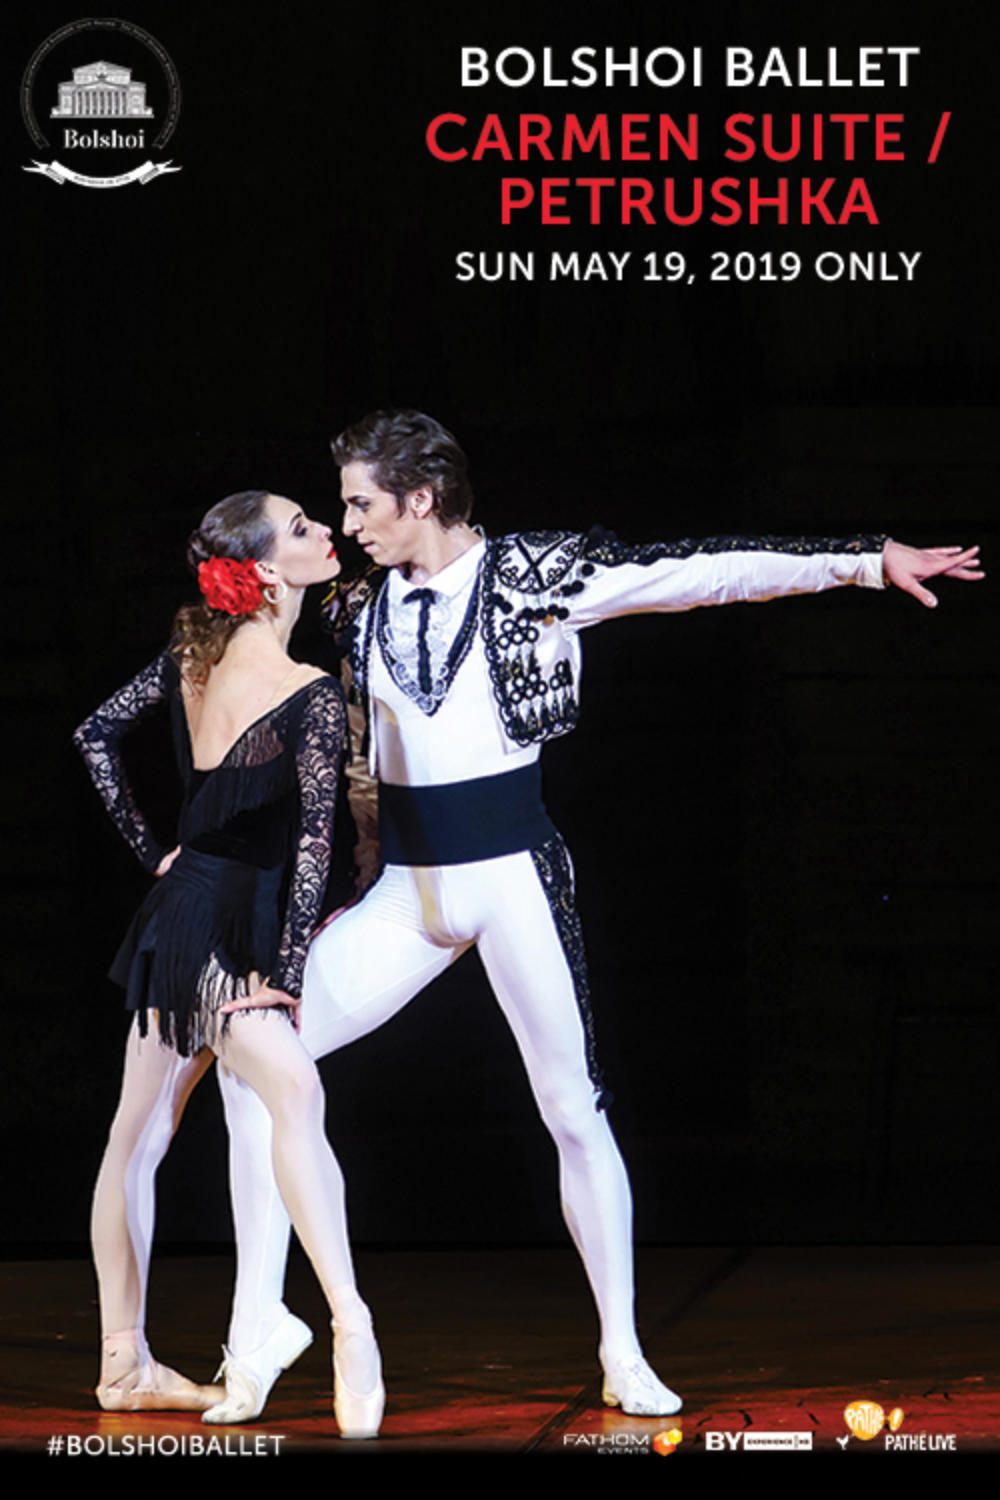 See Bolshoi in Cinema this Sunday, May 19